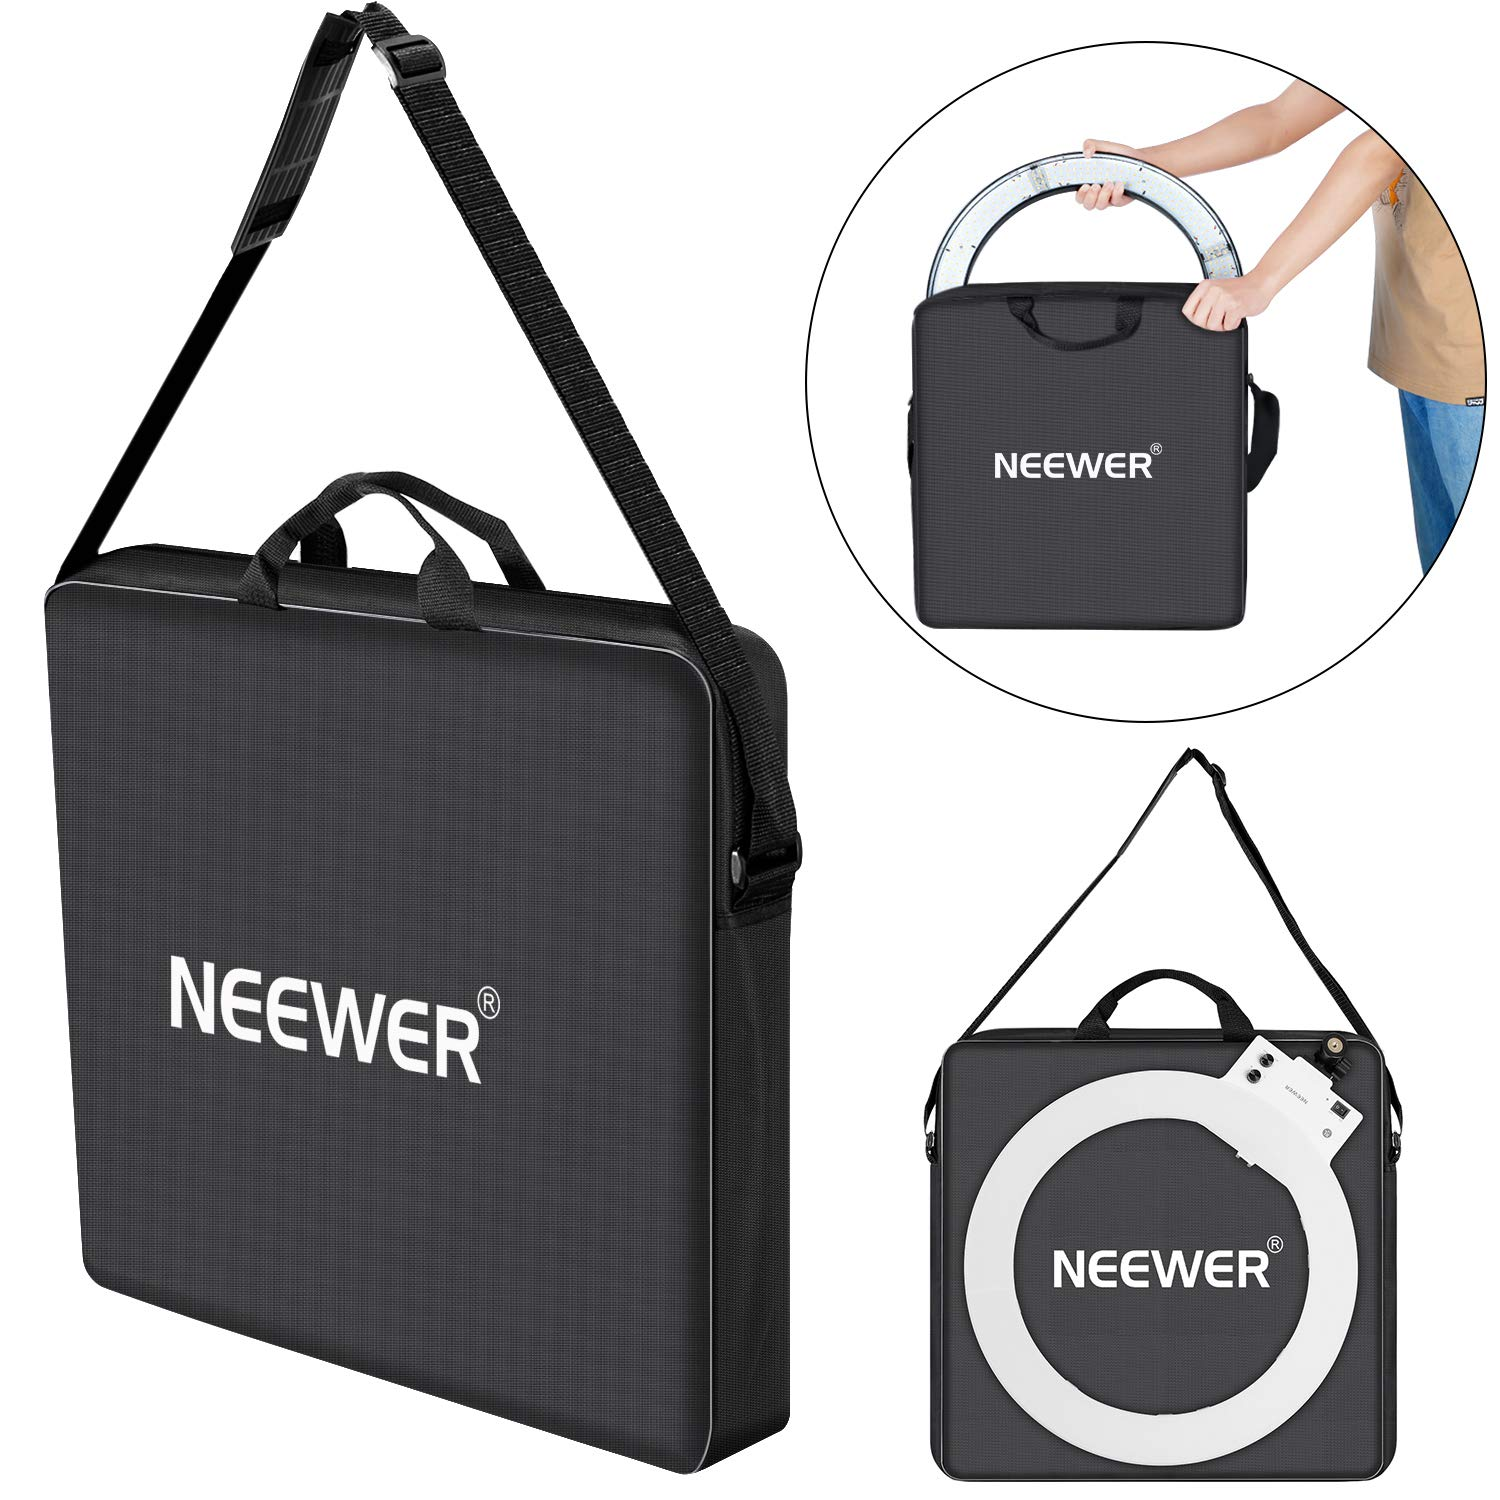 Neewer Photography Carrying Bag Protective Case Compatible with 18 inches Camera Ring Light - 20.47x20.47 inches/52x52 Centimeters, Durable Nylon, Light Weight (Black) 10093166NE